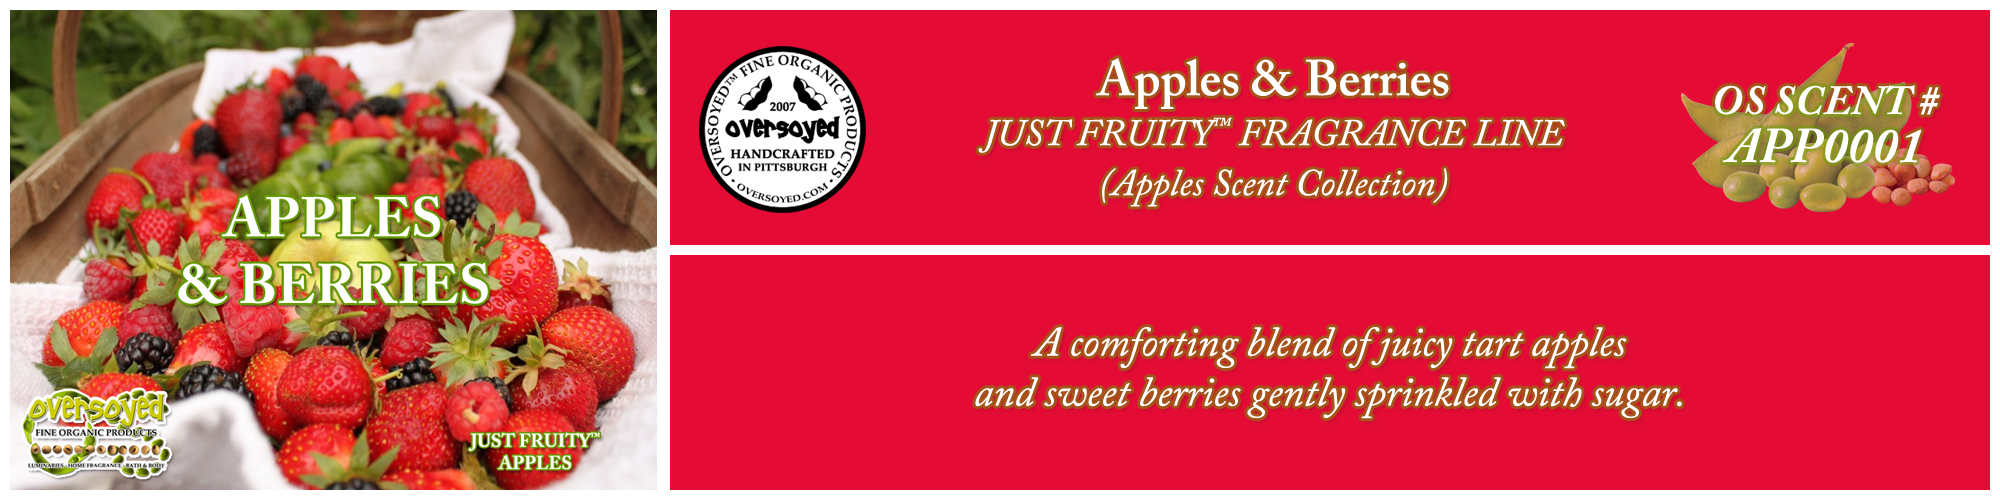 Apples & Berries Handcrafted Products Collection